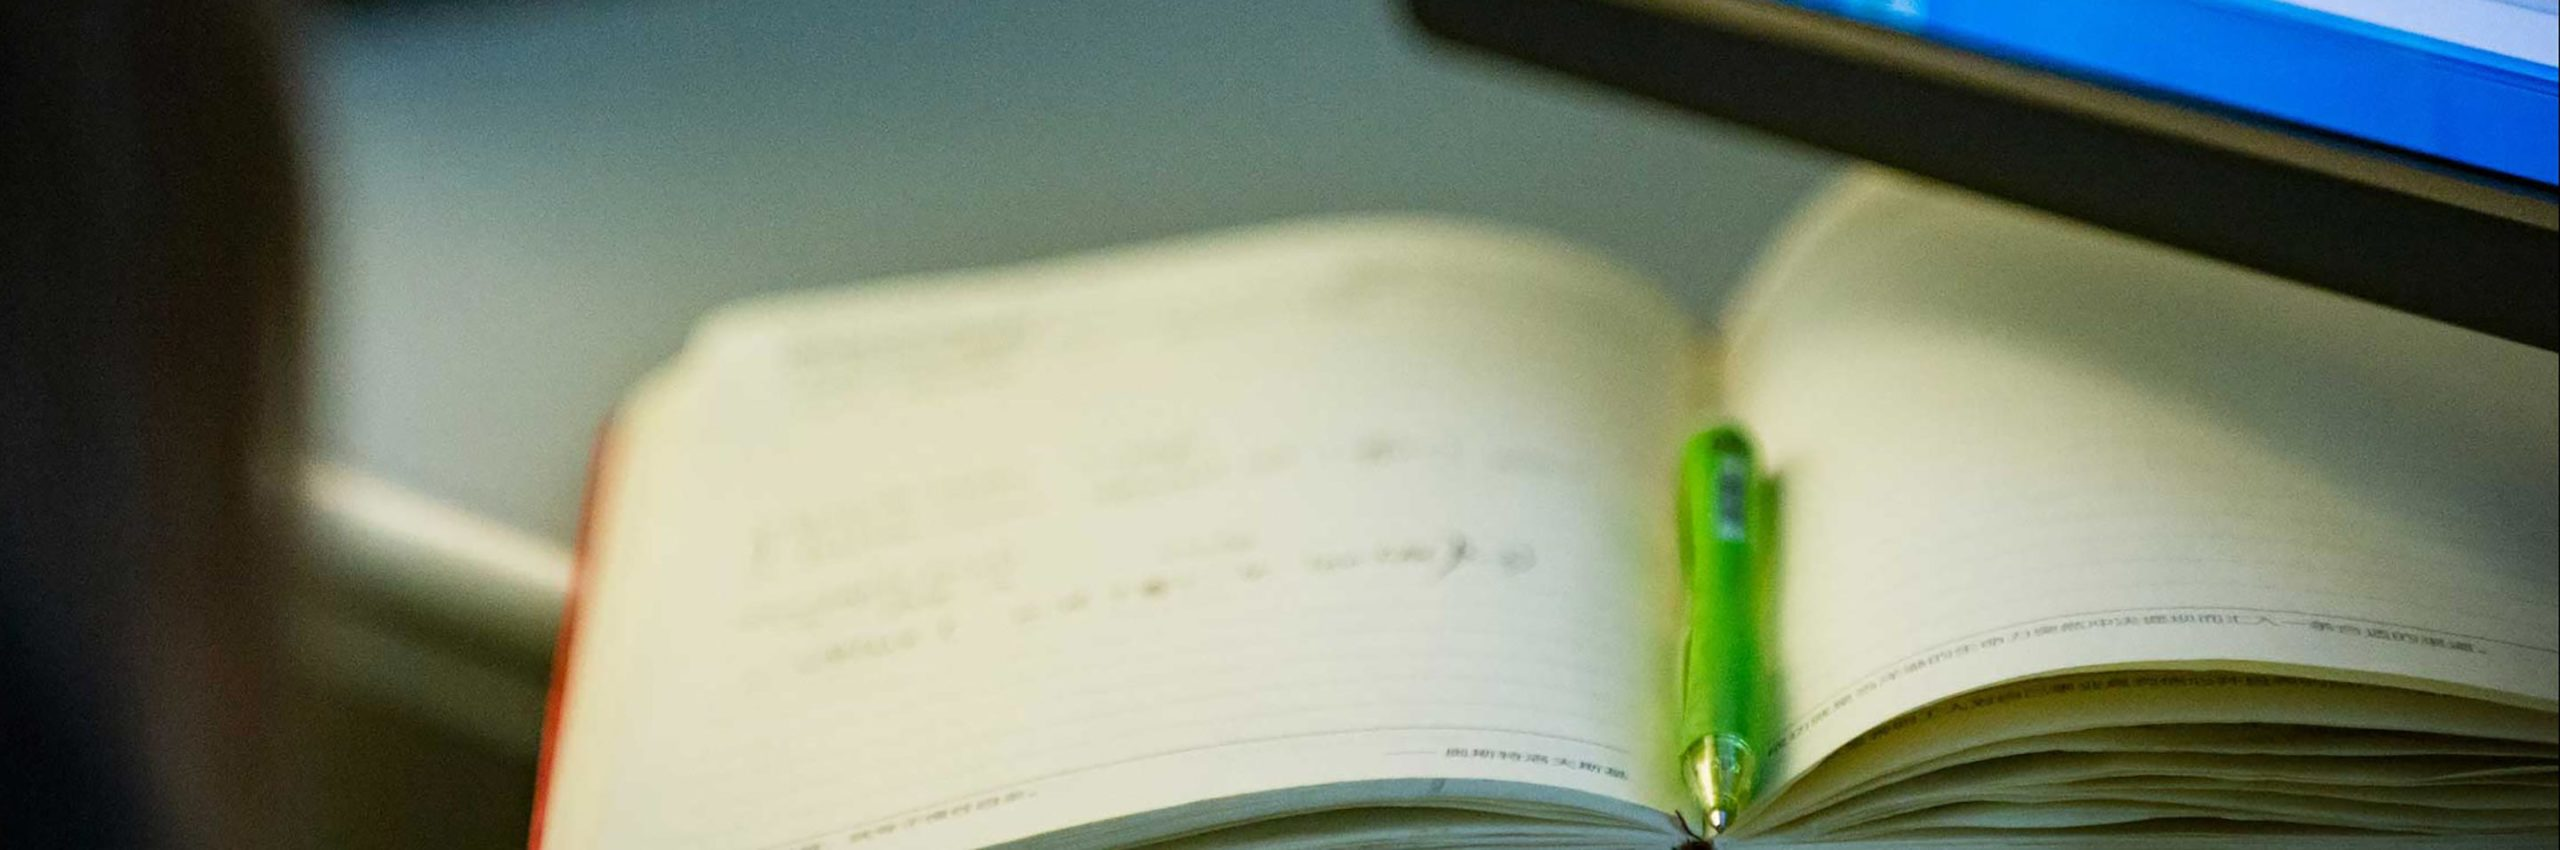 a pen rests on a notebook